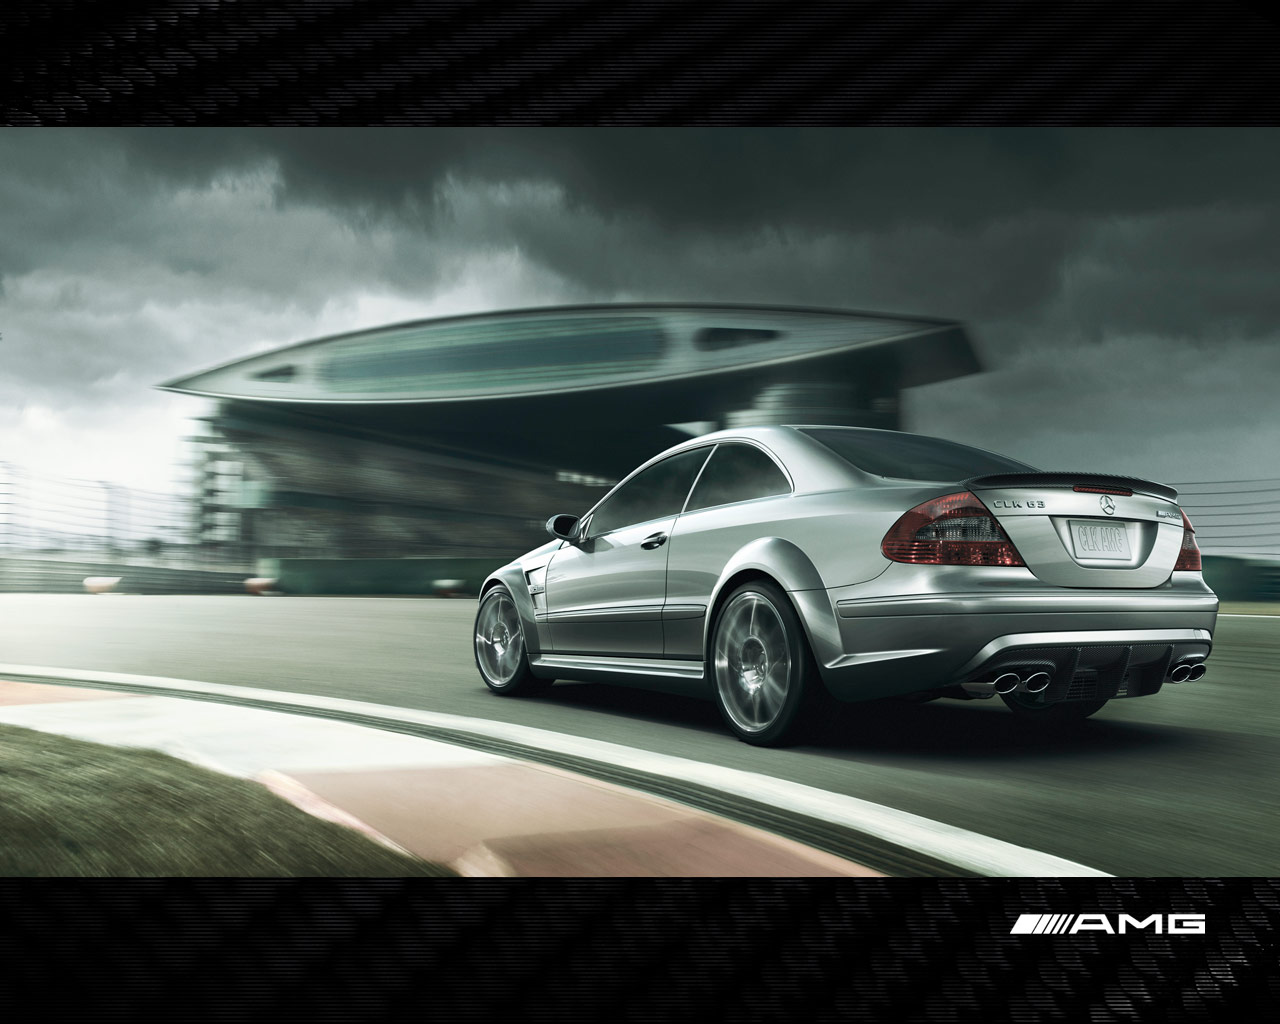 AMG Black Wallpapers Powerful CLK63 AMG Black Myspace Backgrounds 1280x1024